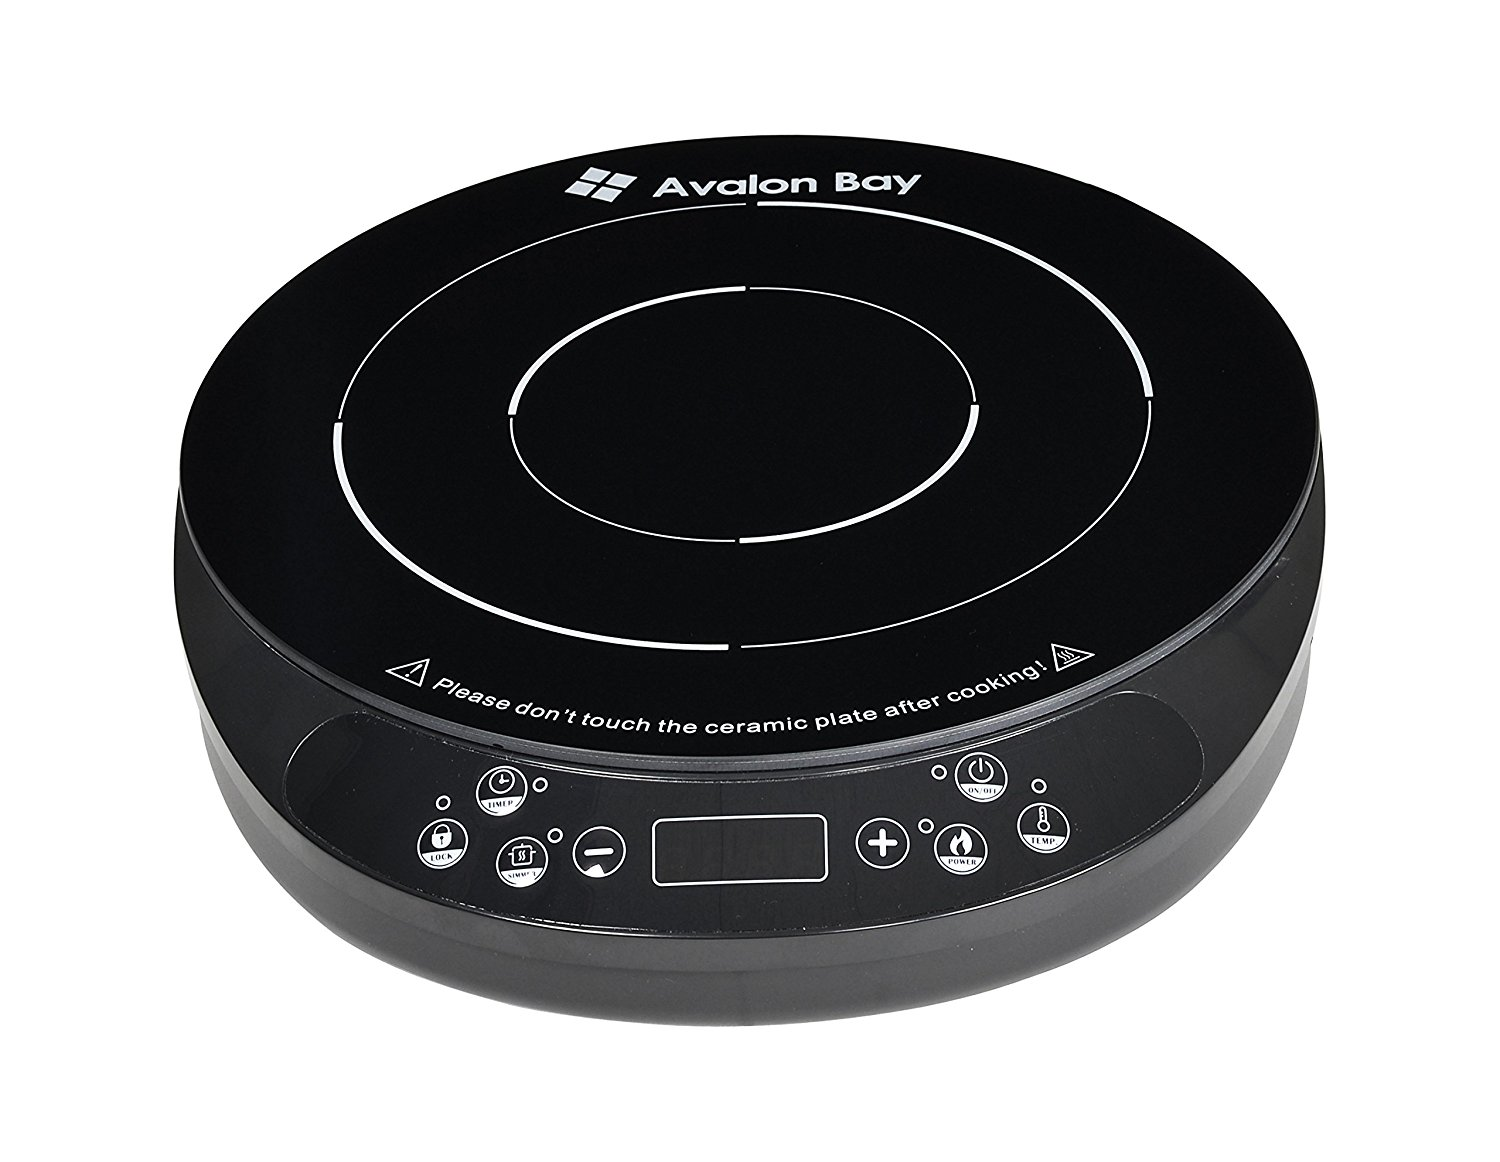 Induction Cooktop by Avalon Bay, 1800 Watts, Euro Edition (Temperature in Celsius) IC200B